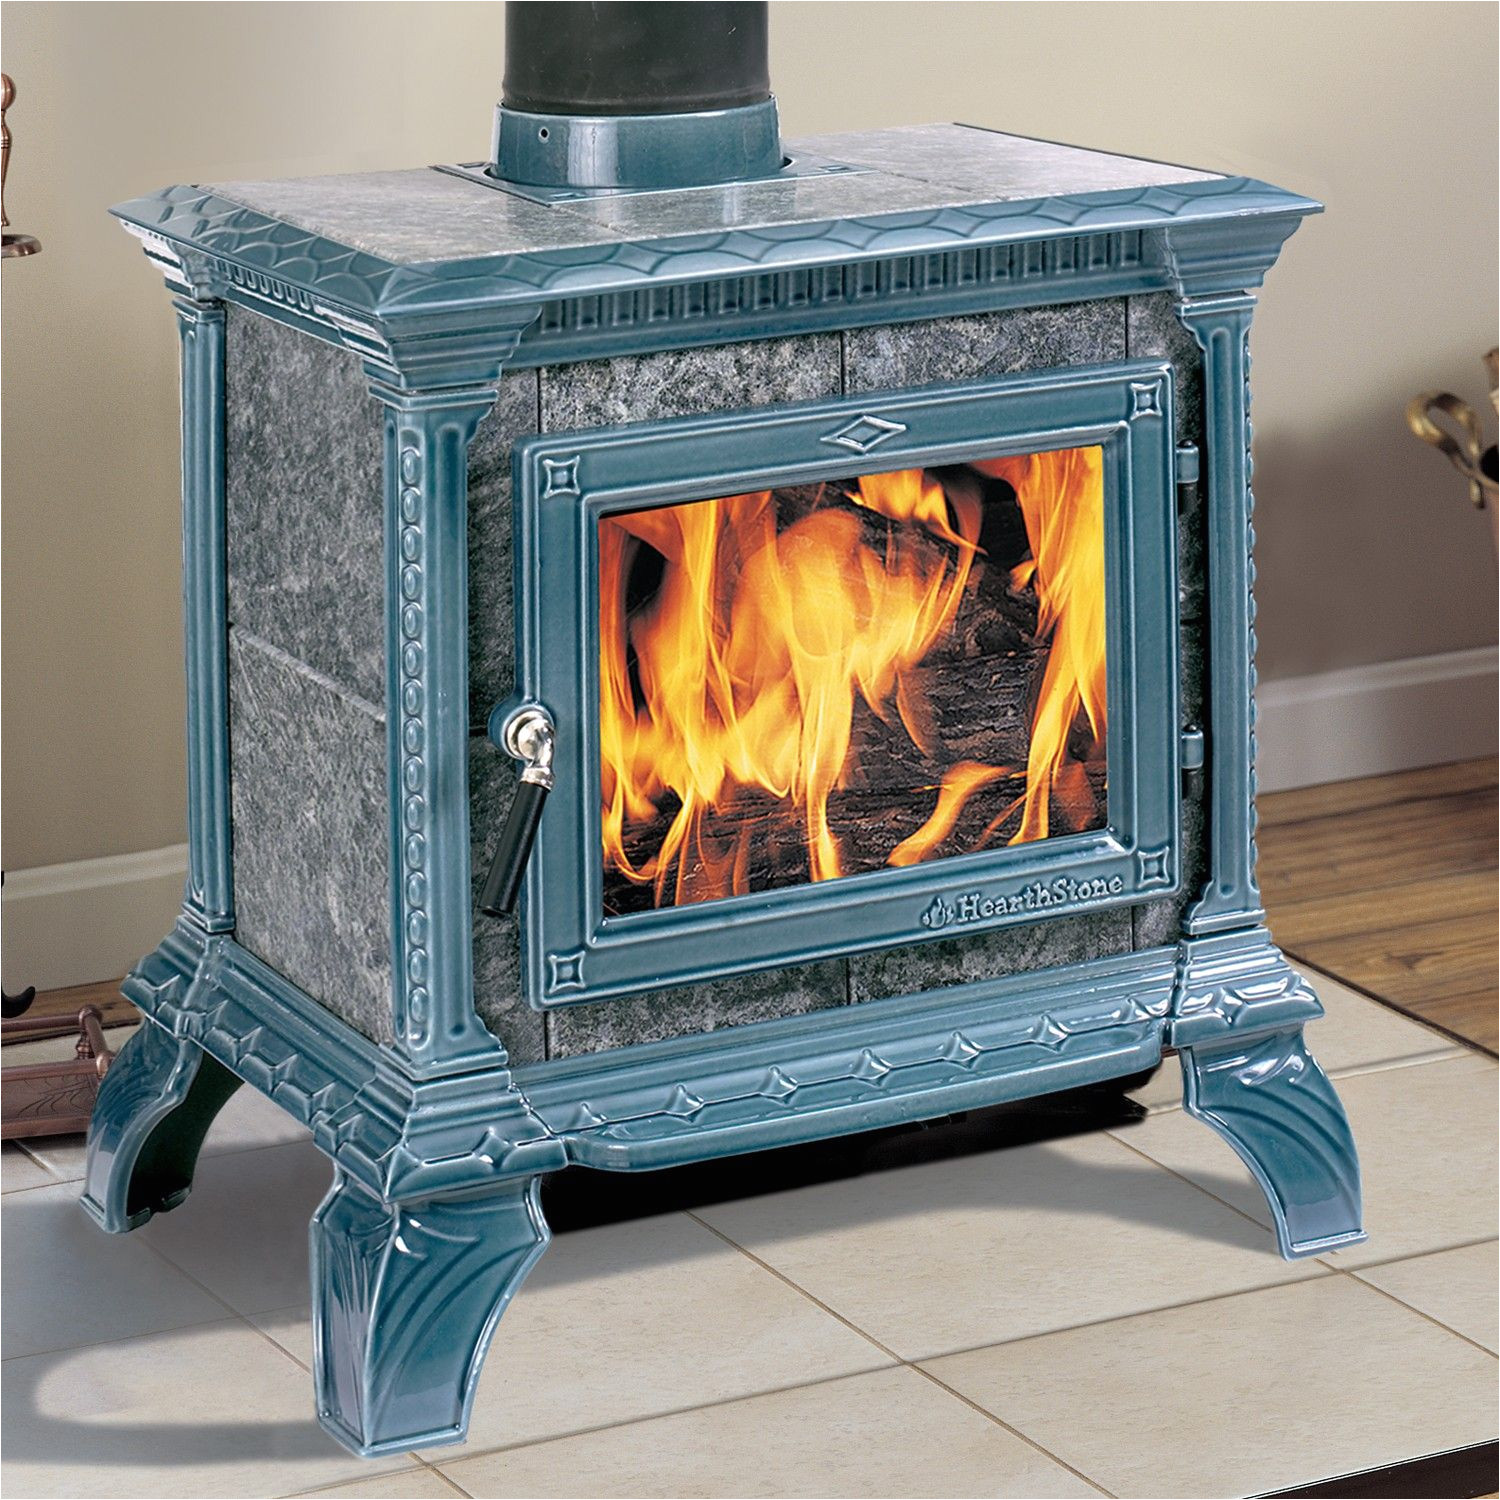 the tribute is designed to satisfy the customer who loves the style of our heritage woodstove